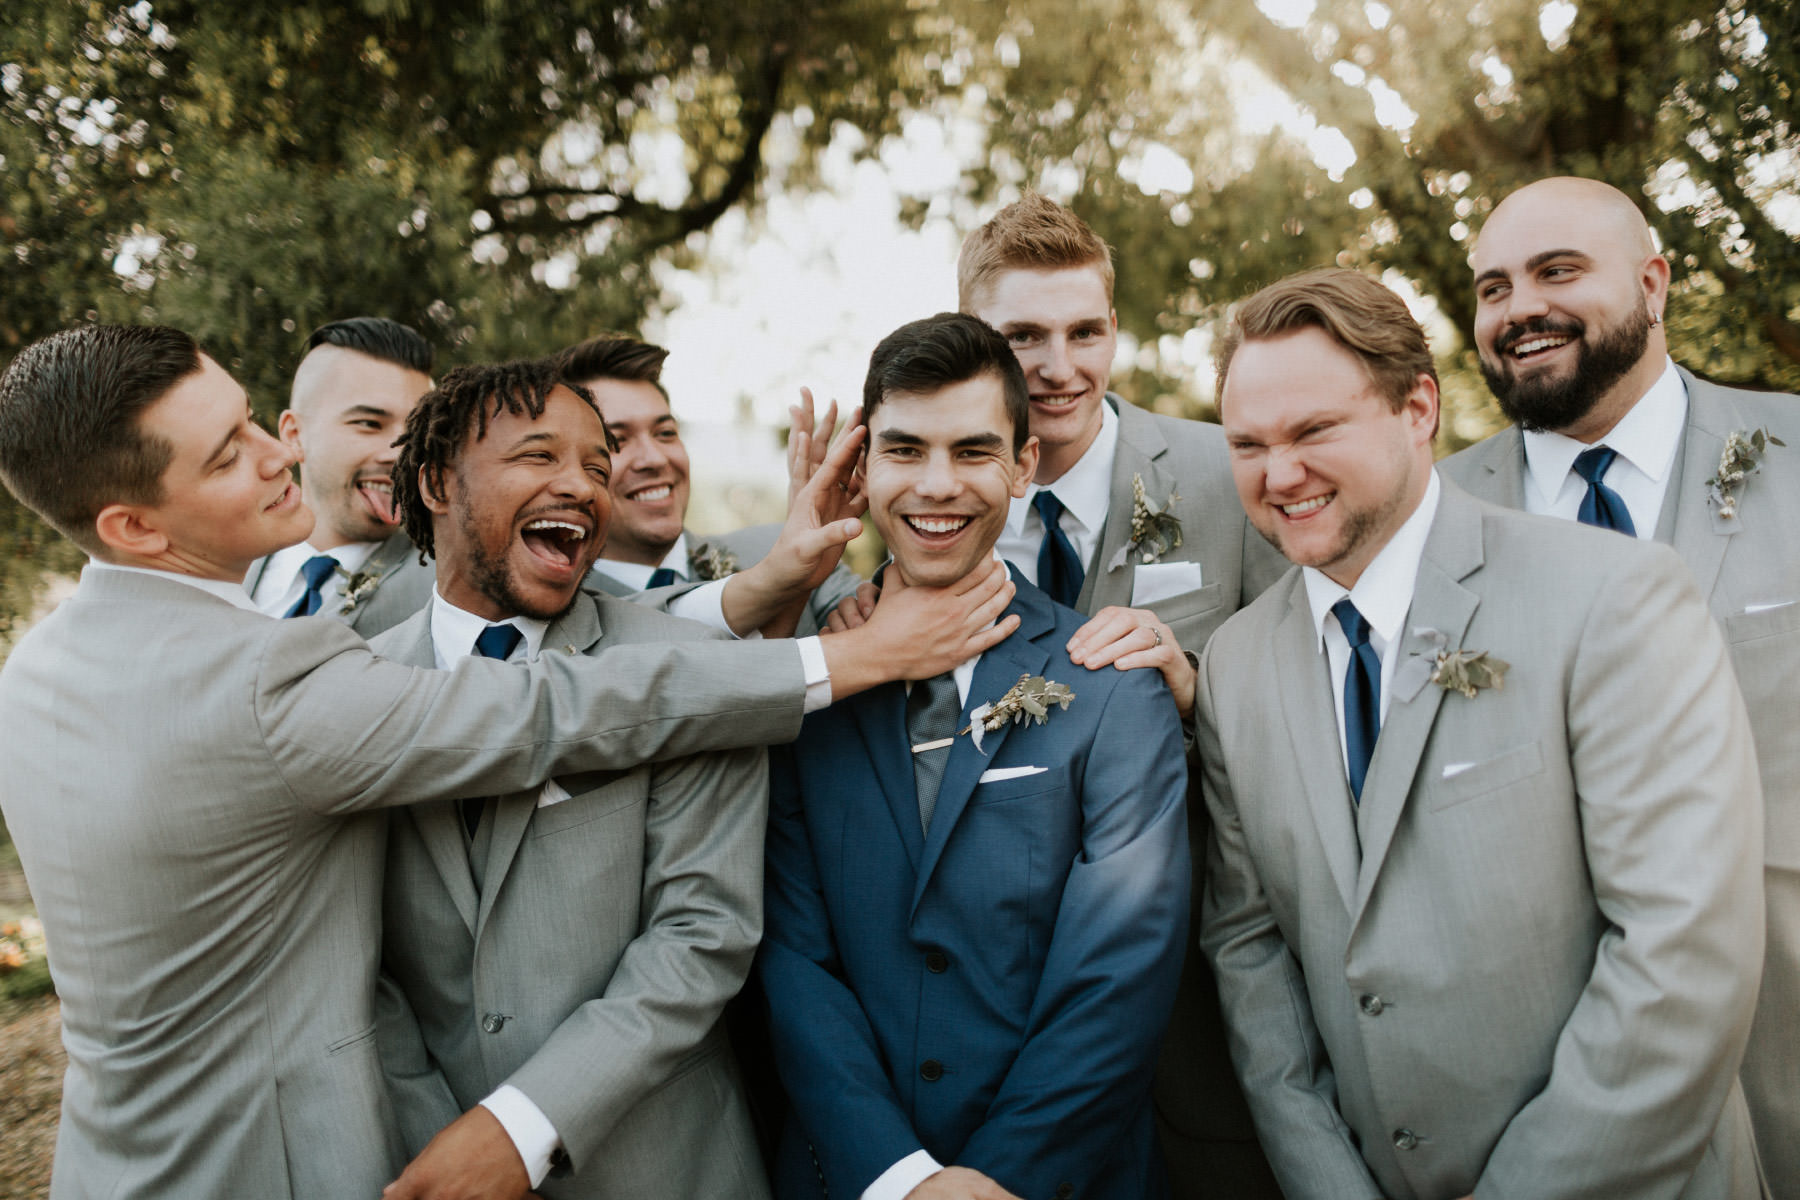 Groomsmen messing with the groom